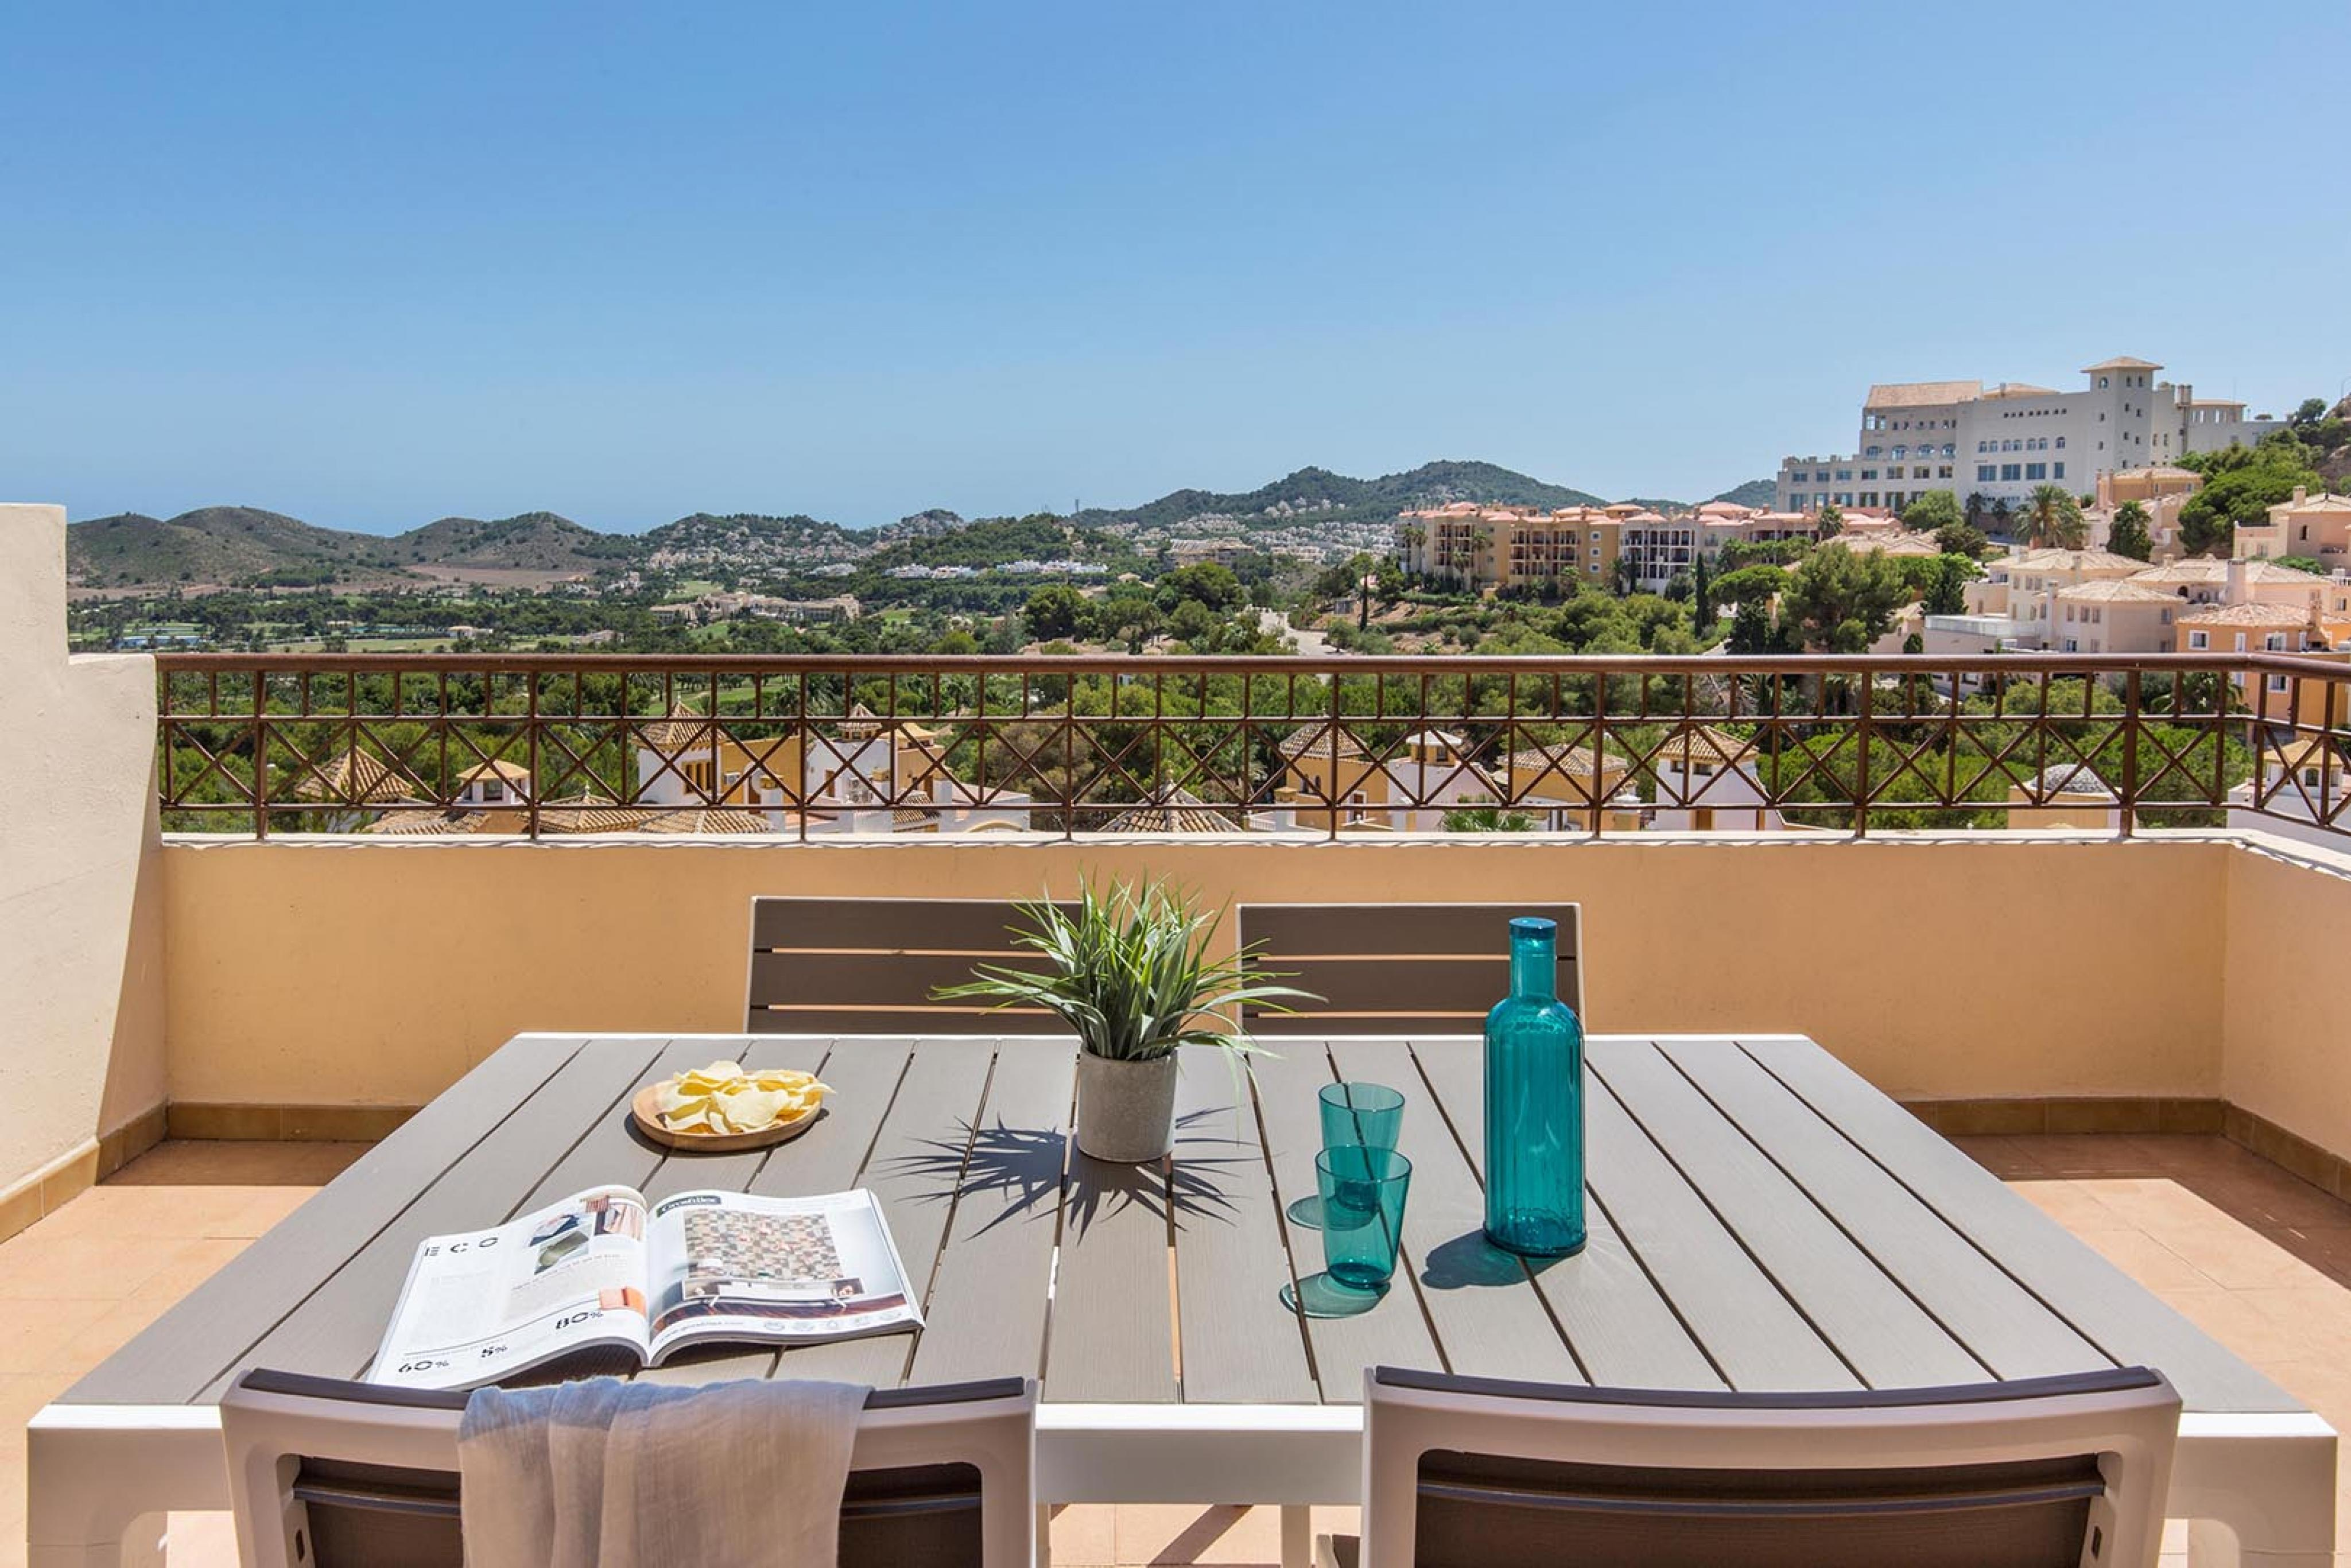 La Manga Club Resort - Buena Vista 577 2 Bedrooms, for rent